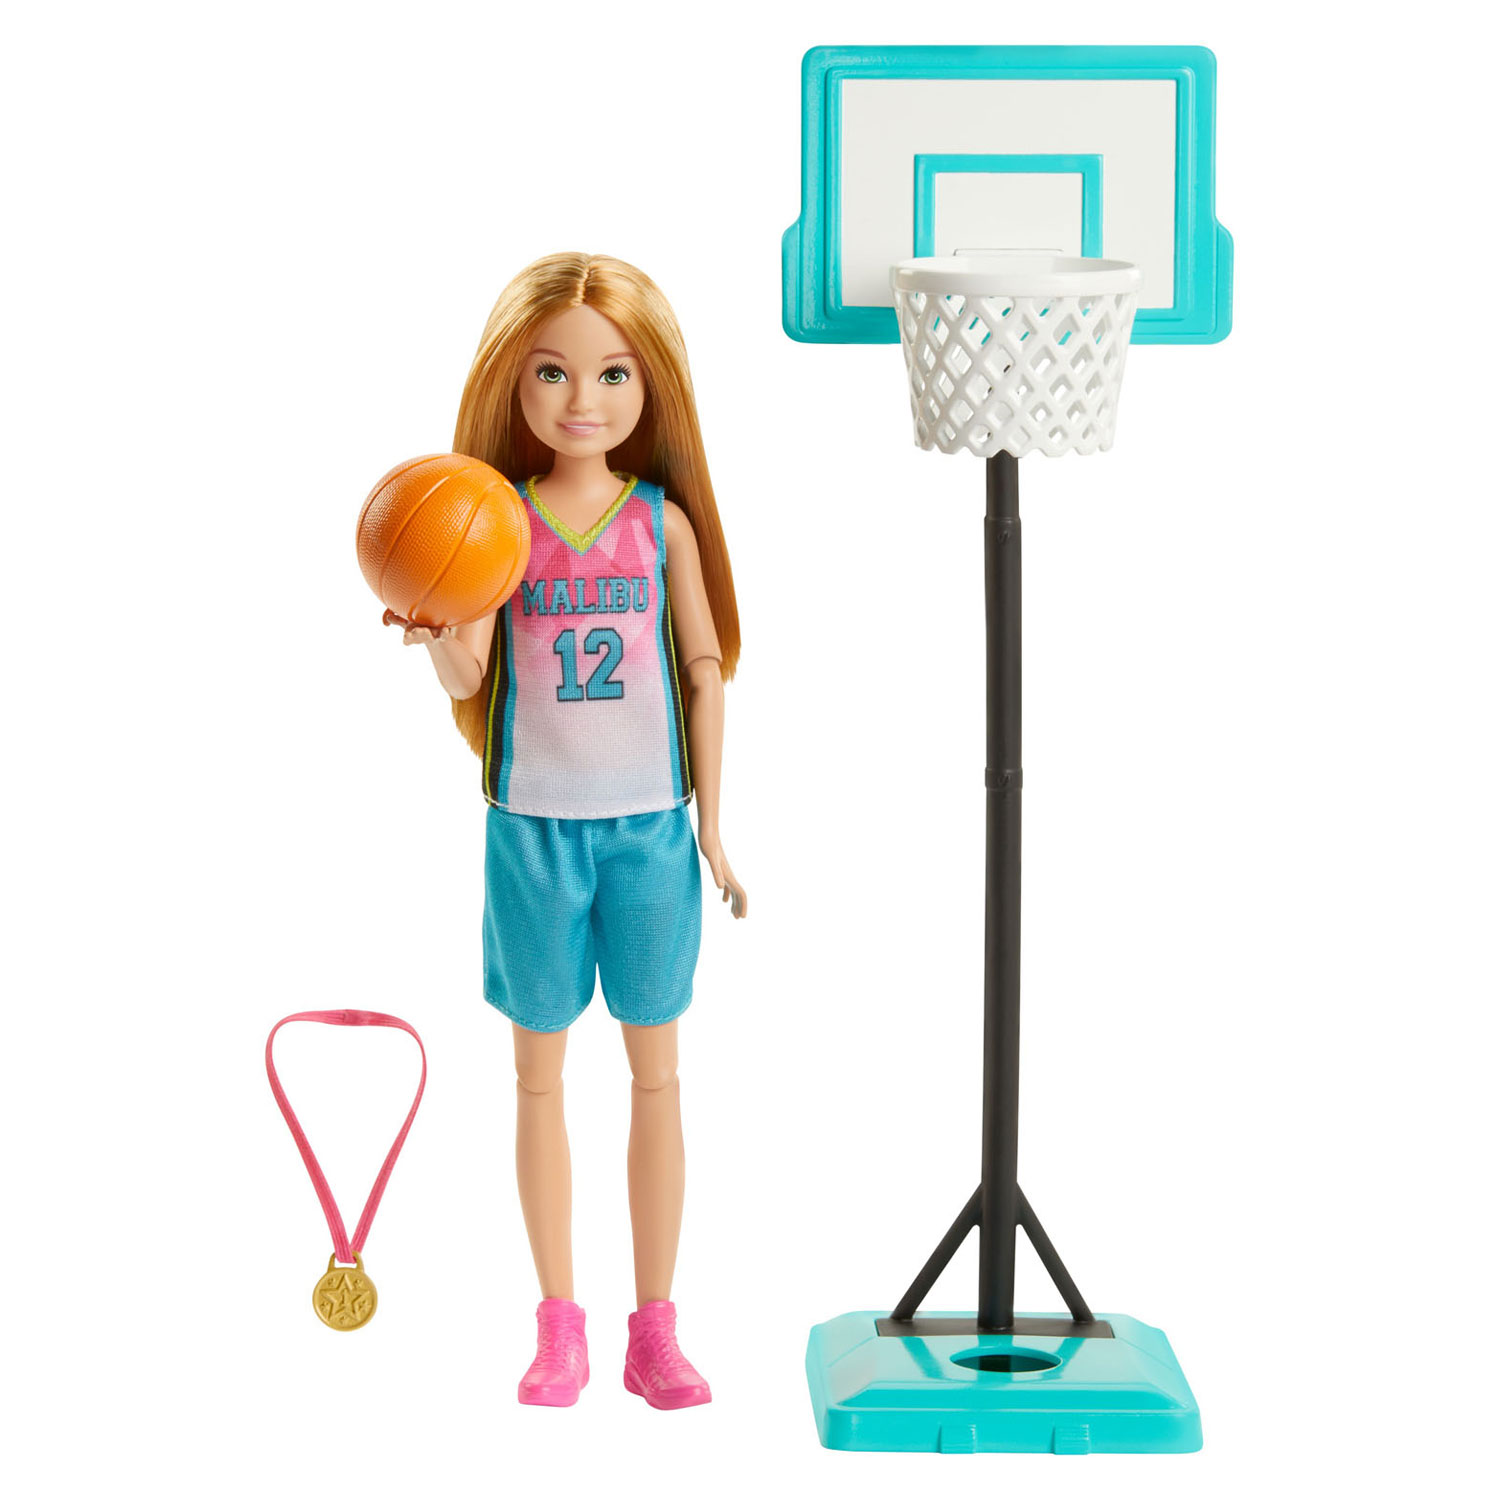 Barbie Dreamhouse Adventures Basketbalspeler Stacie